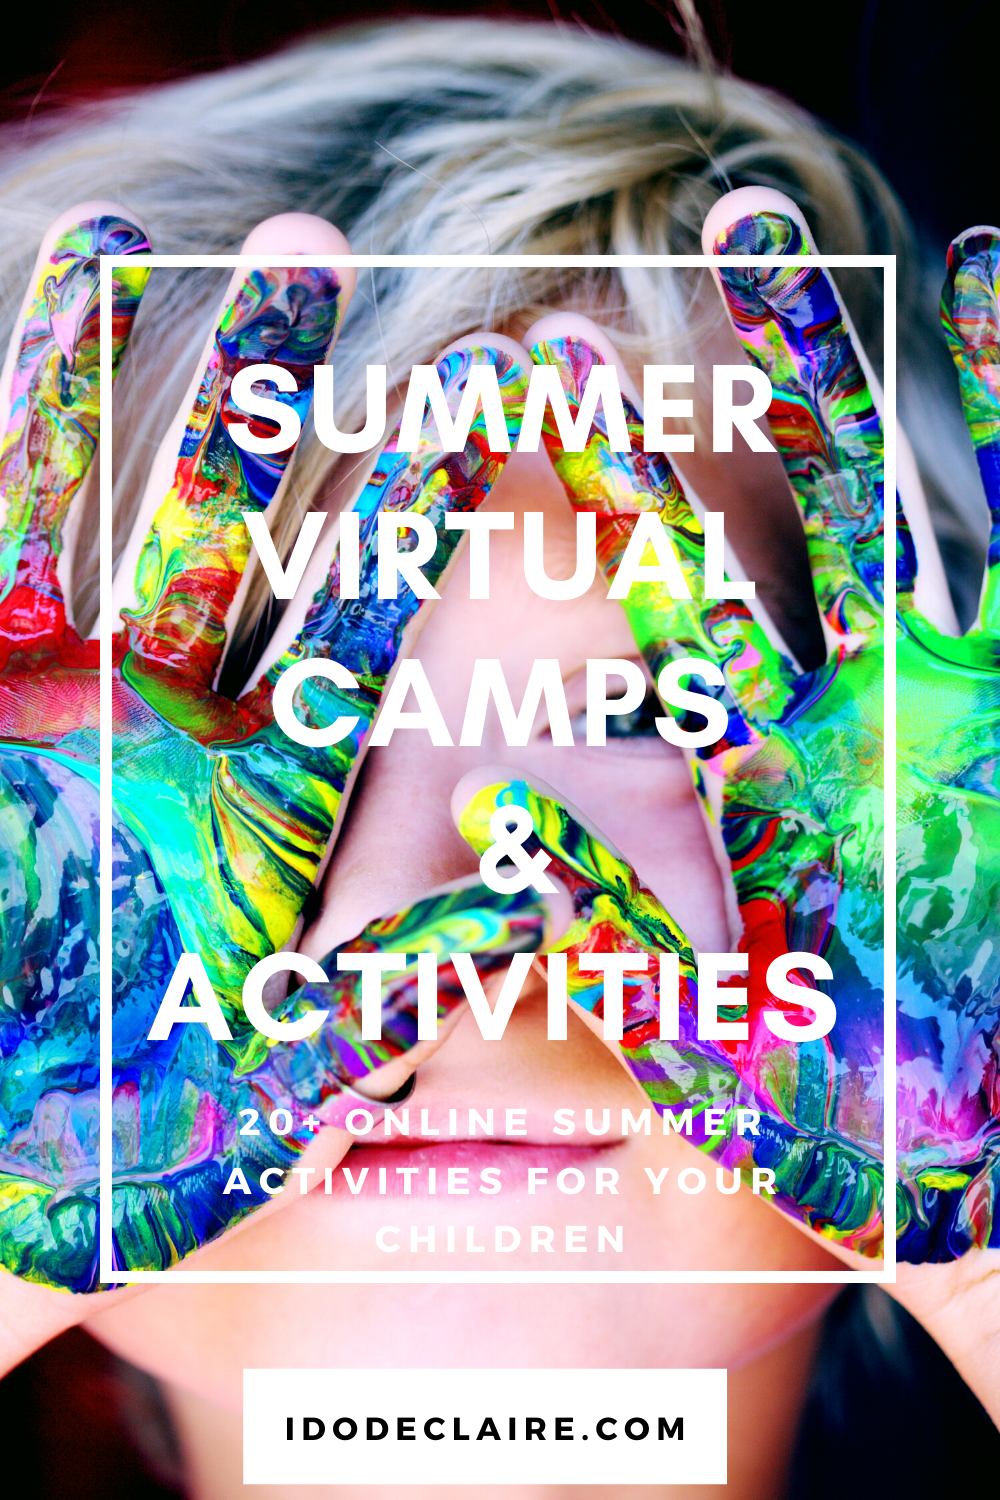 Virtual Camps & Activities for Kids This Summer